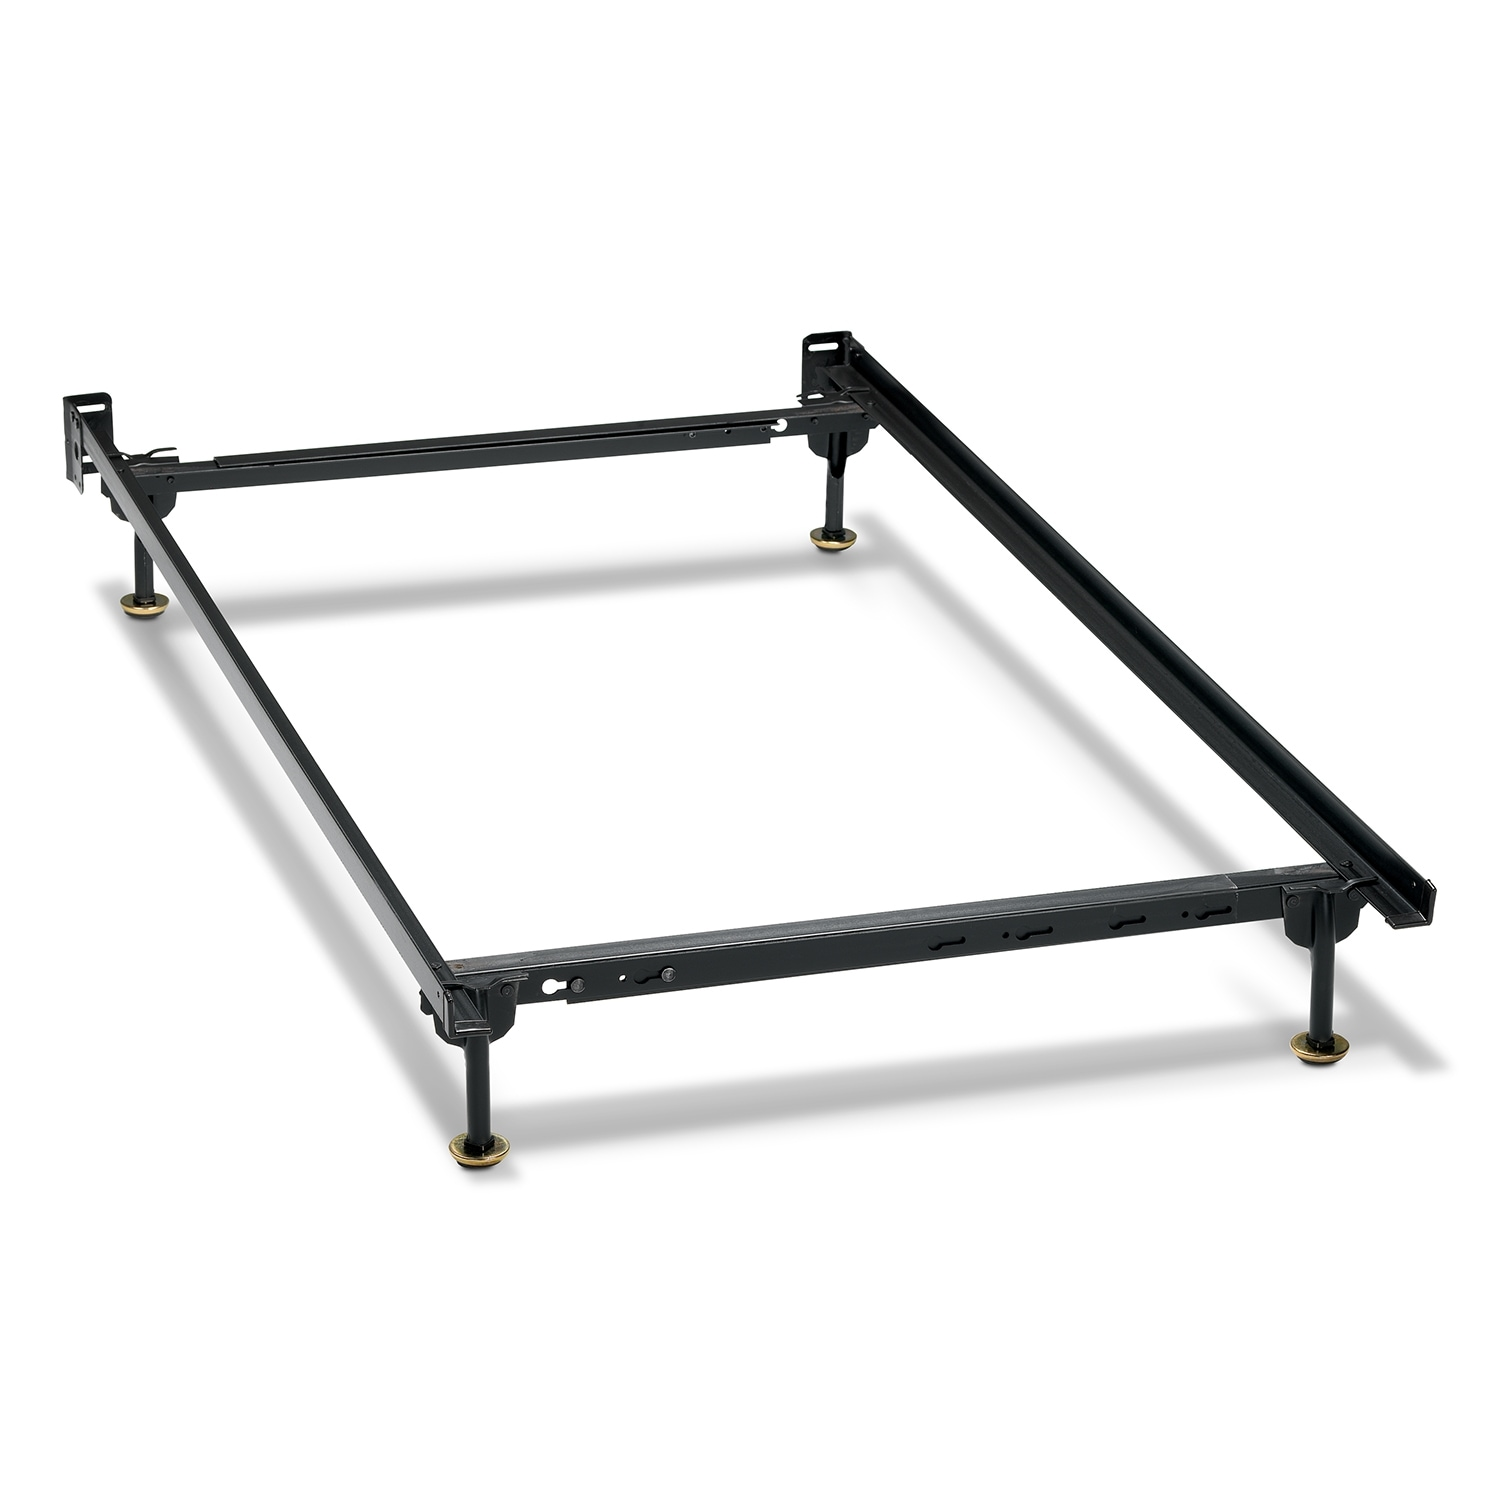 24g twinfull bed frame